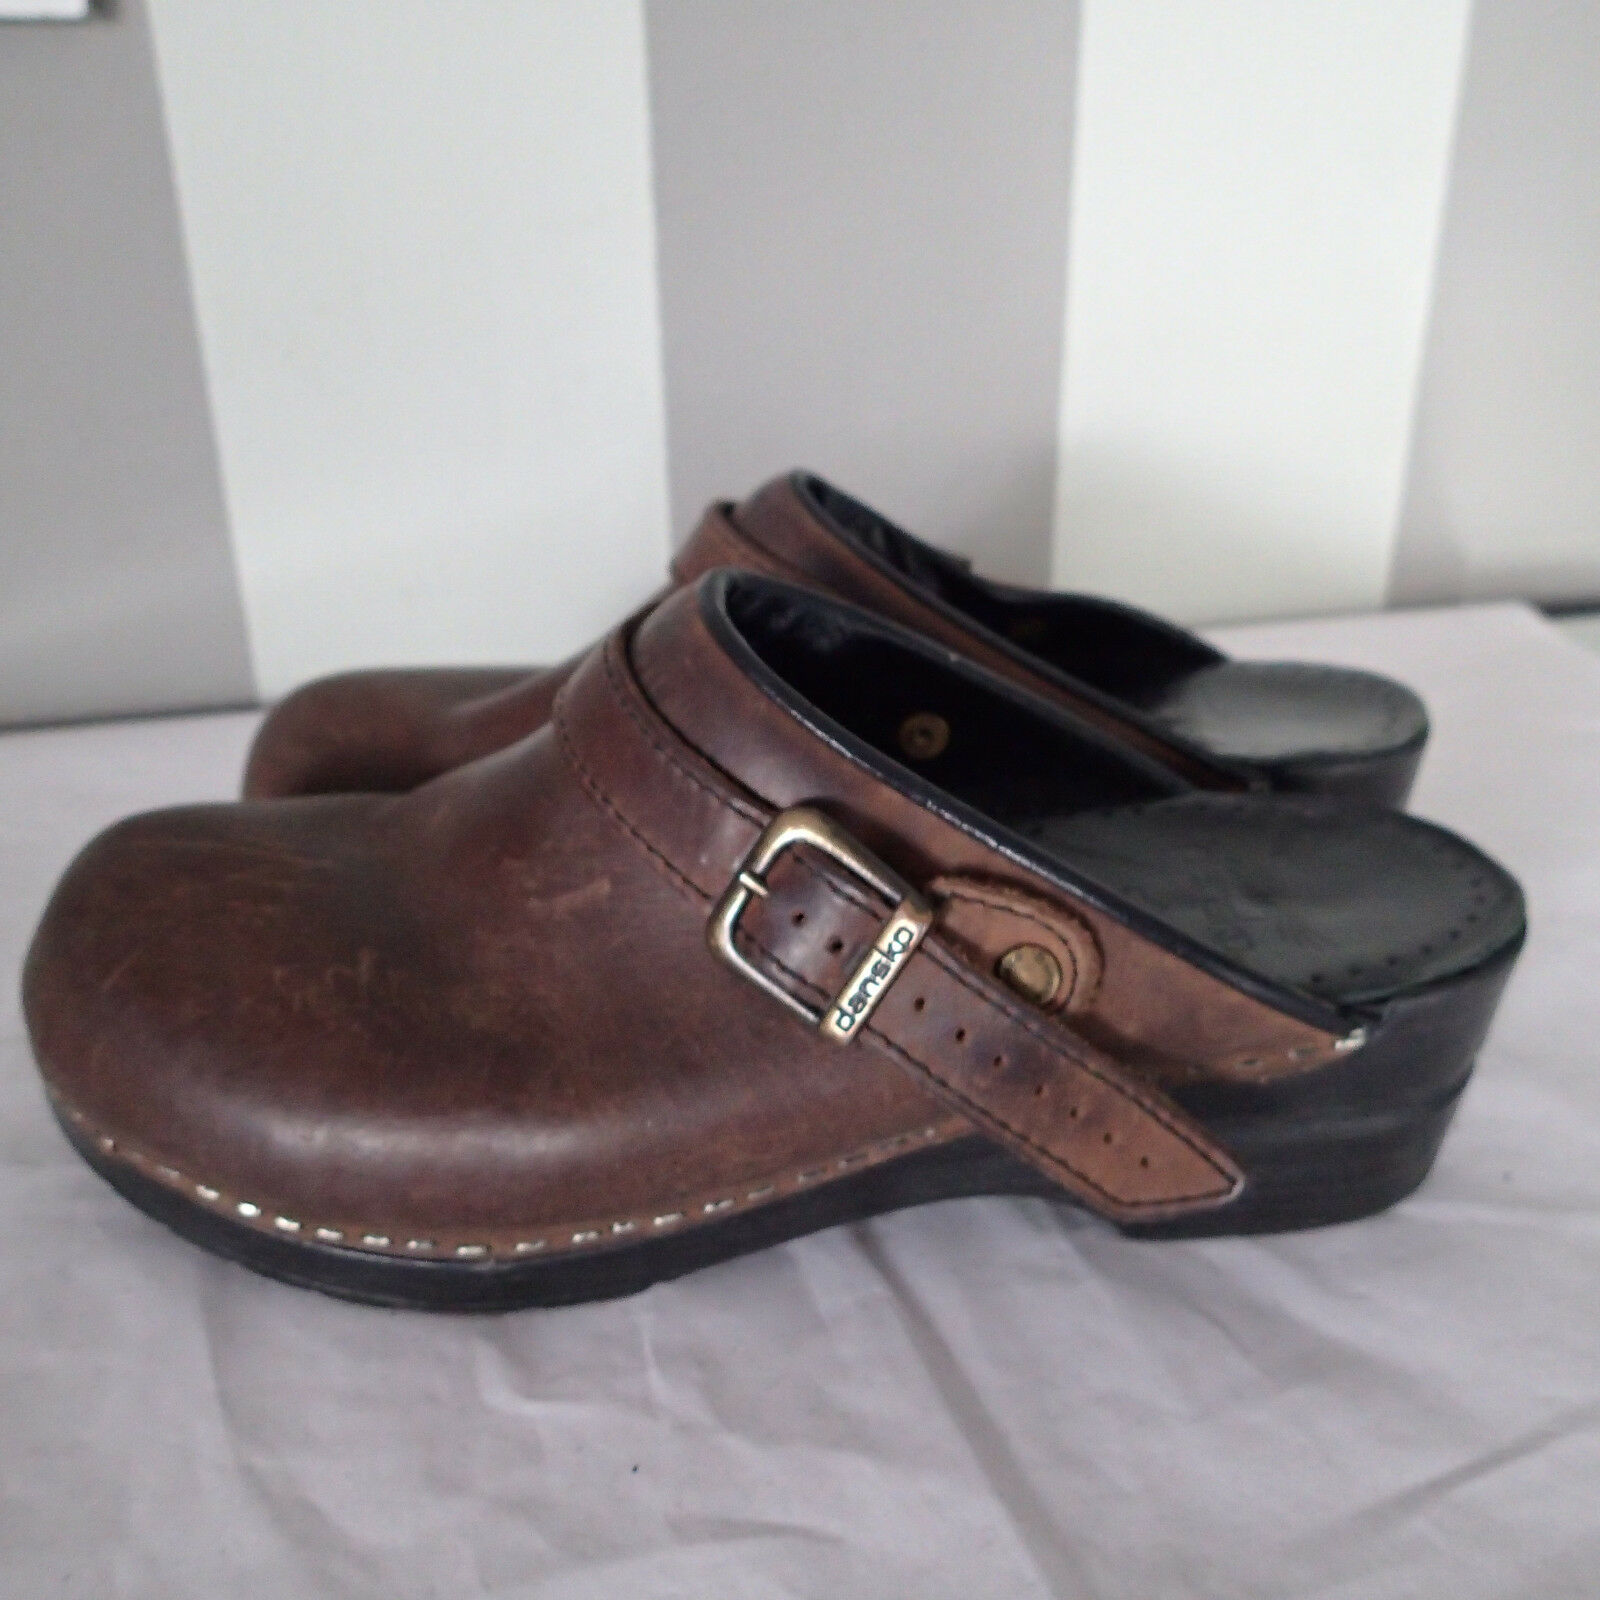 Dansko  shoes,brown Leather sz 40 clogs slides g